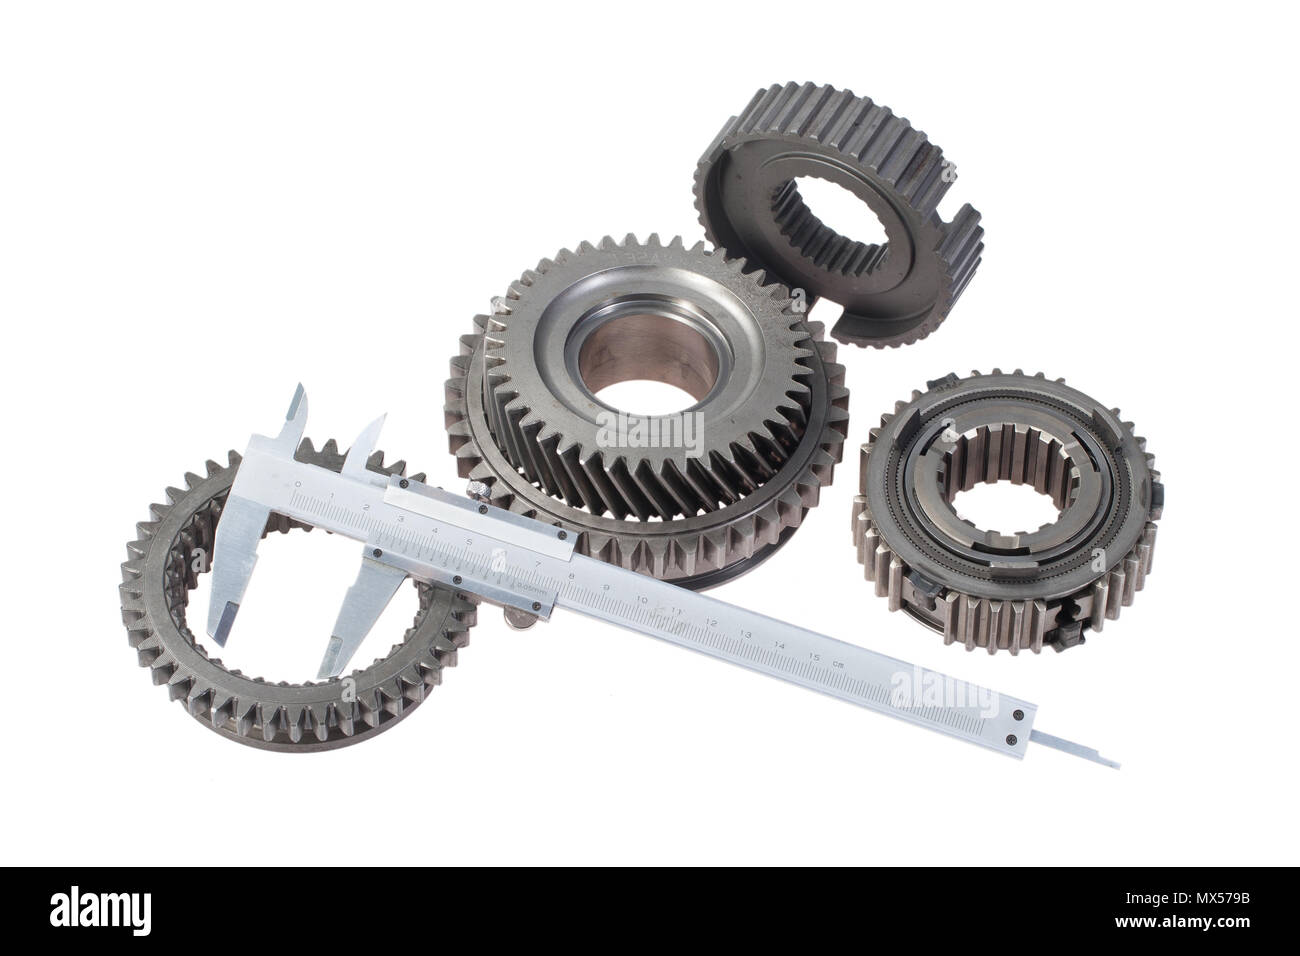 cog wheels with vernier calipers isolated on white background - Stock Image